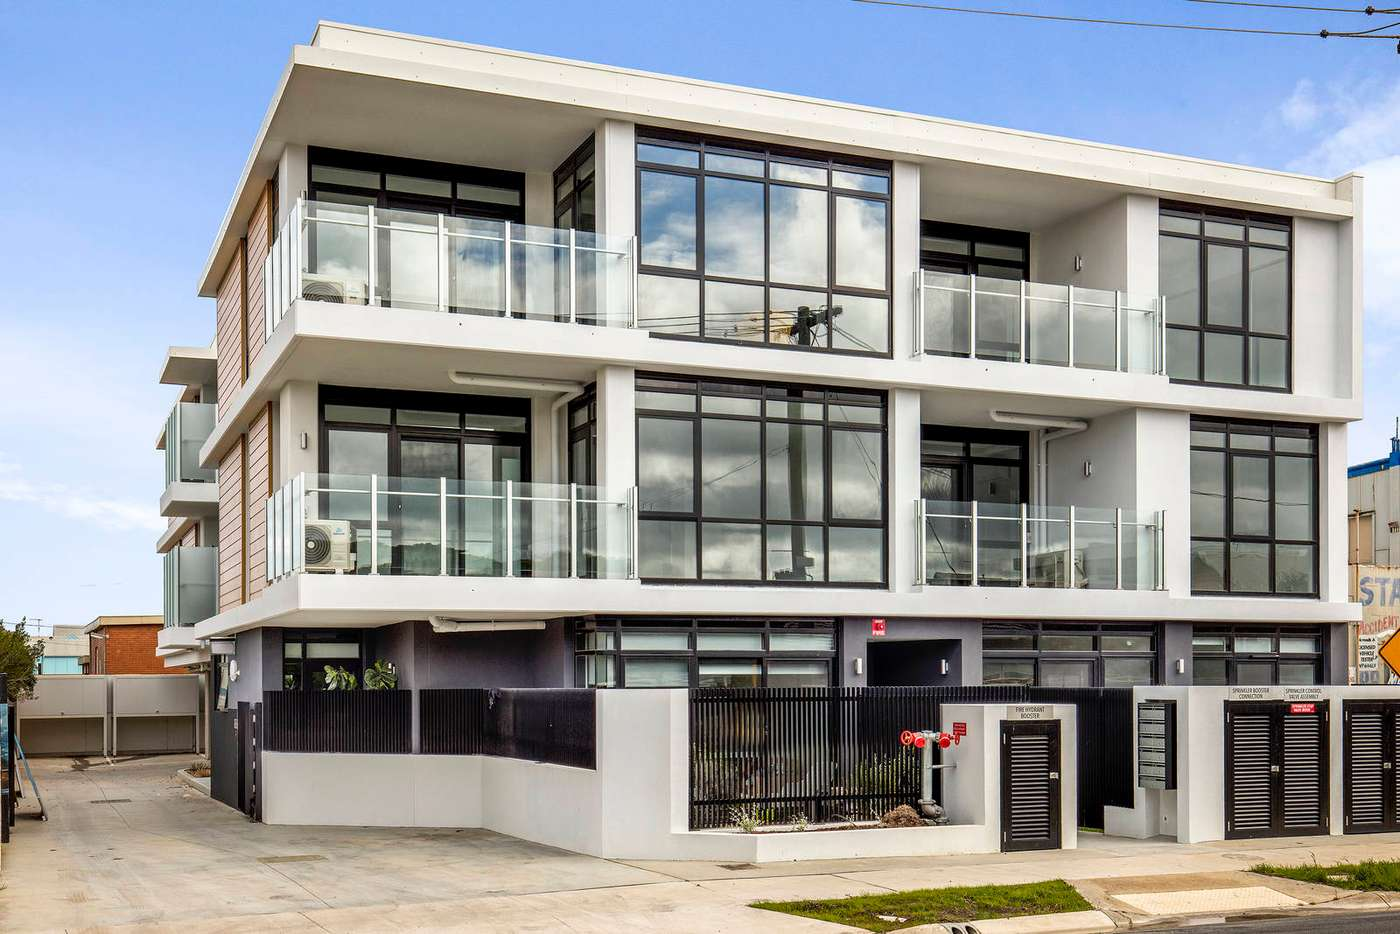 Main view of Homely apartment listing, 100 The Parade, Ocean Grove, VIC 3226